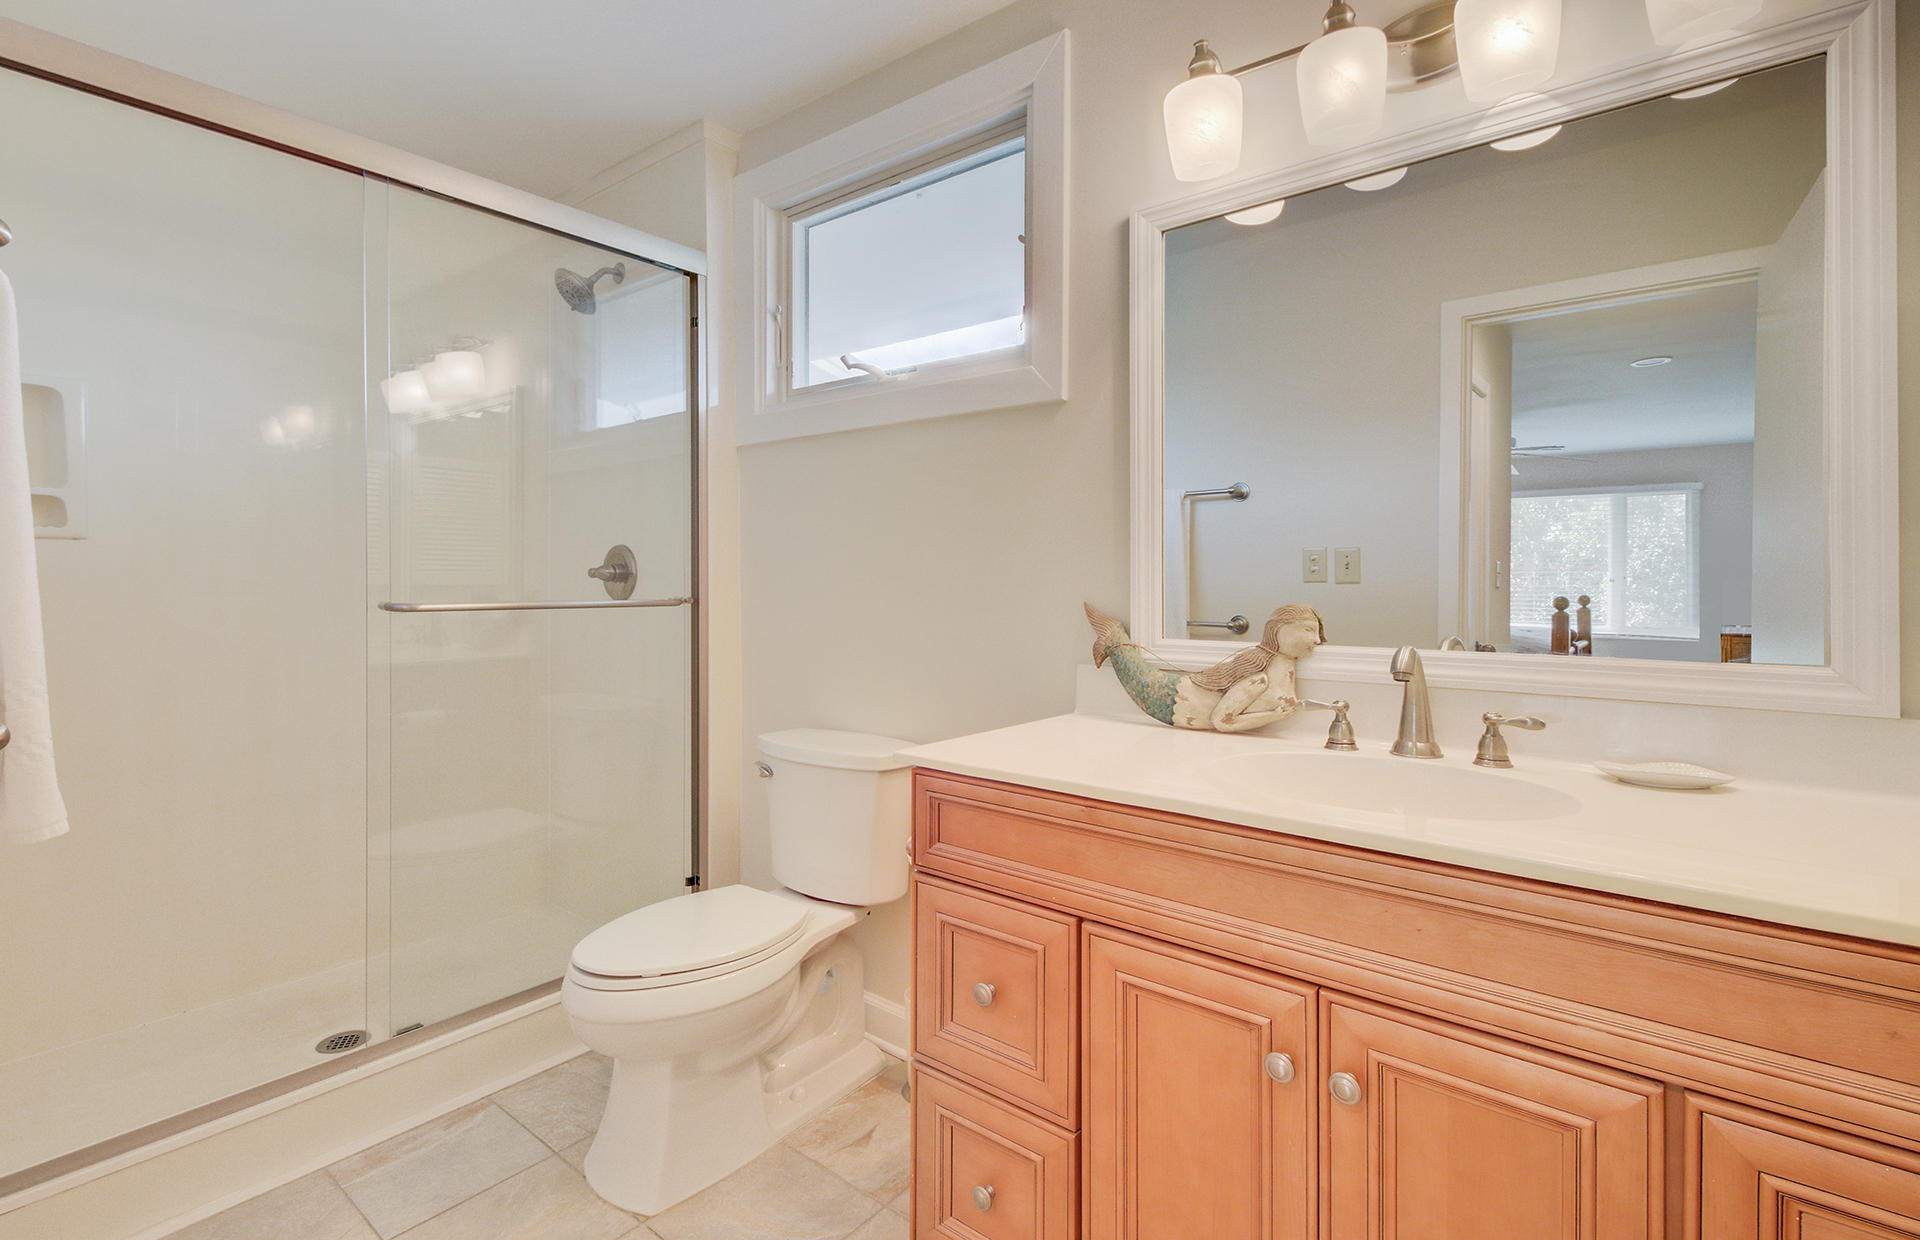 Wild Dunes Homes For Sale - 6 Seagrove, Isle of Palms, SC - 13